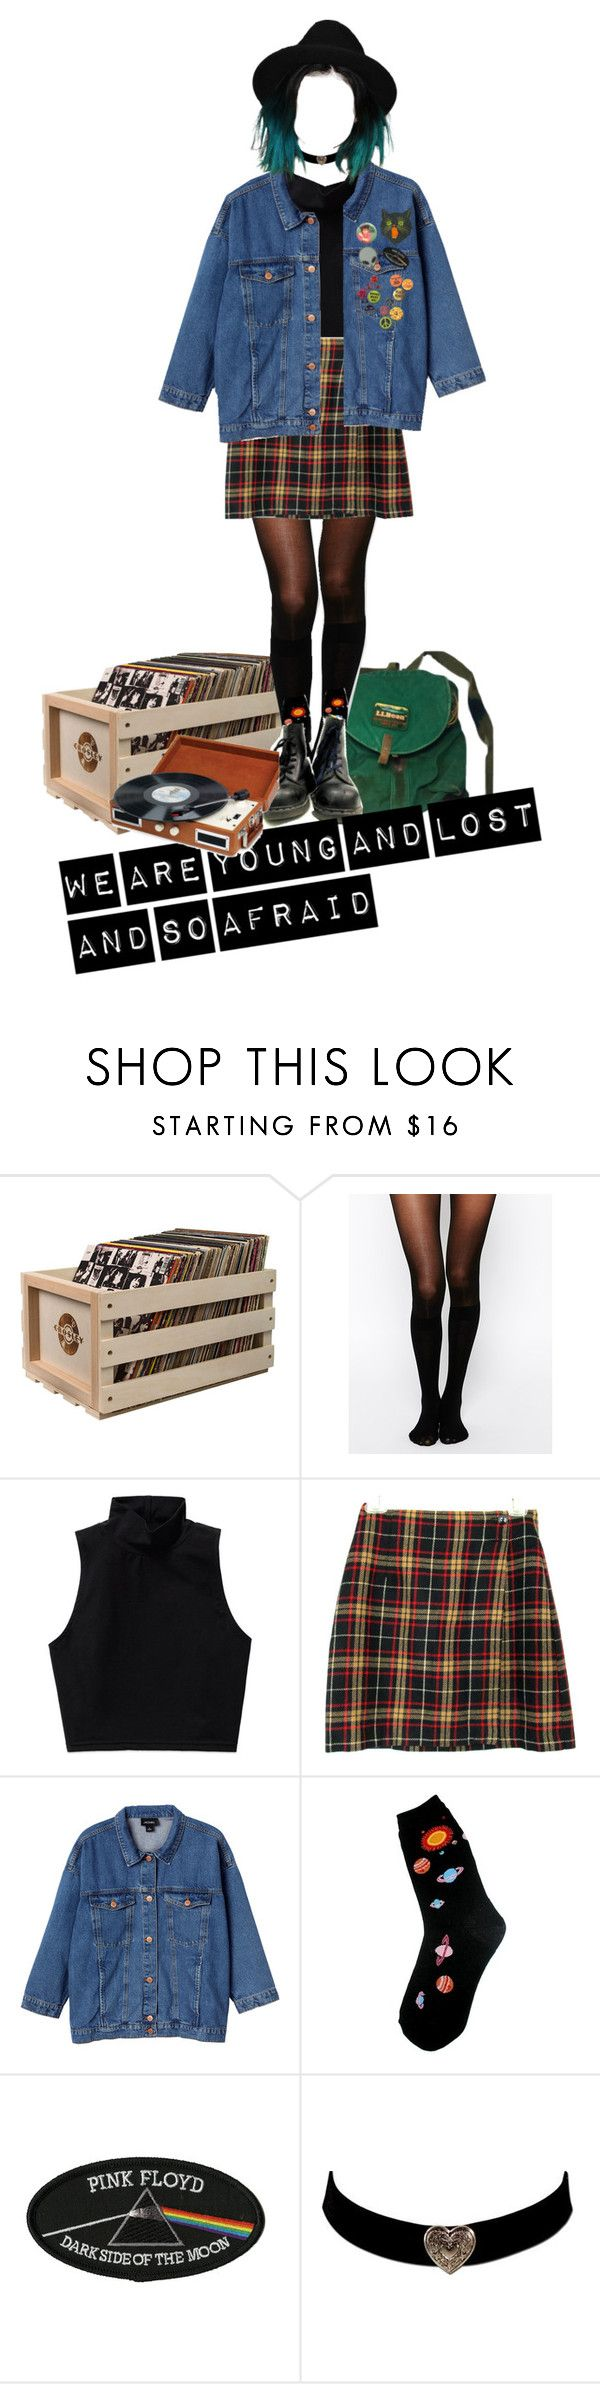 """""""we are young and lost and so afraid ---HIM"""" by tearsofashes on Polyvore featuring moda, Crosley, Pretty Polly, Talula, Monki, Foot Traffic ve Retrò"""